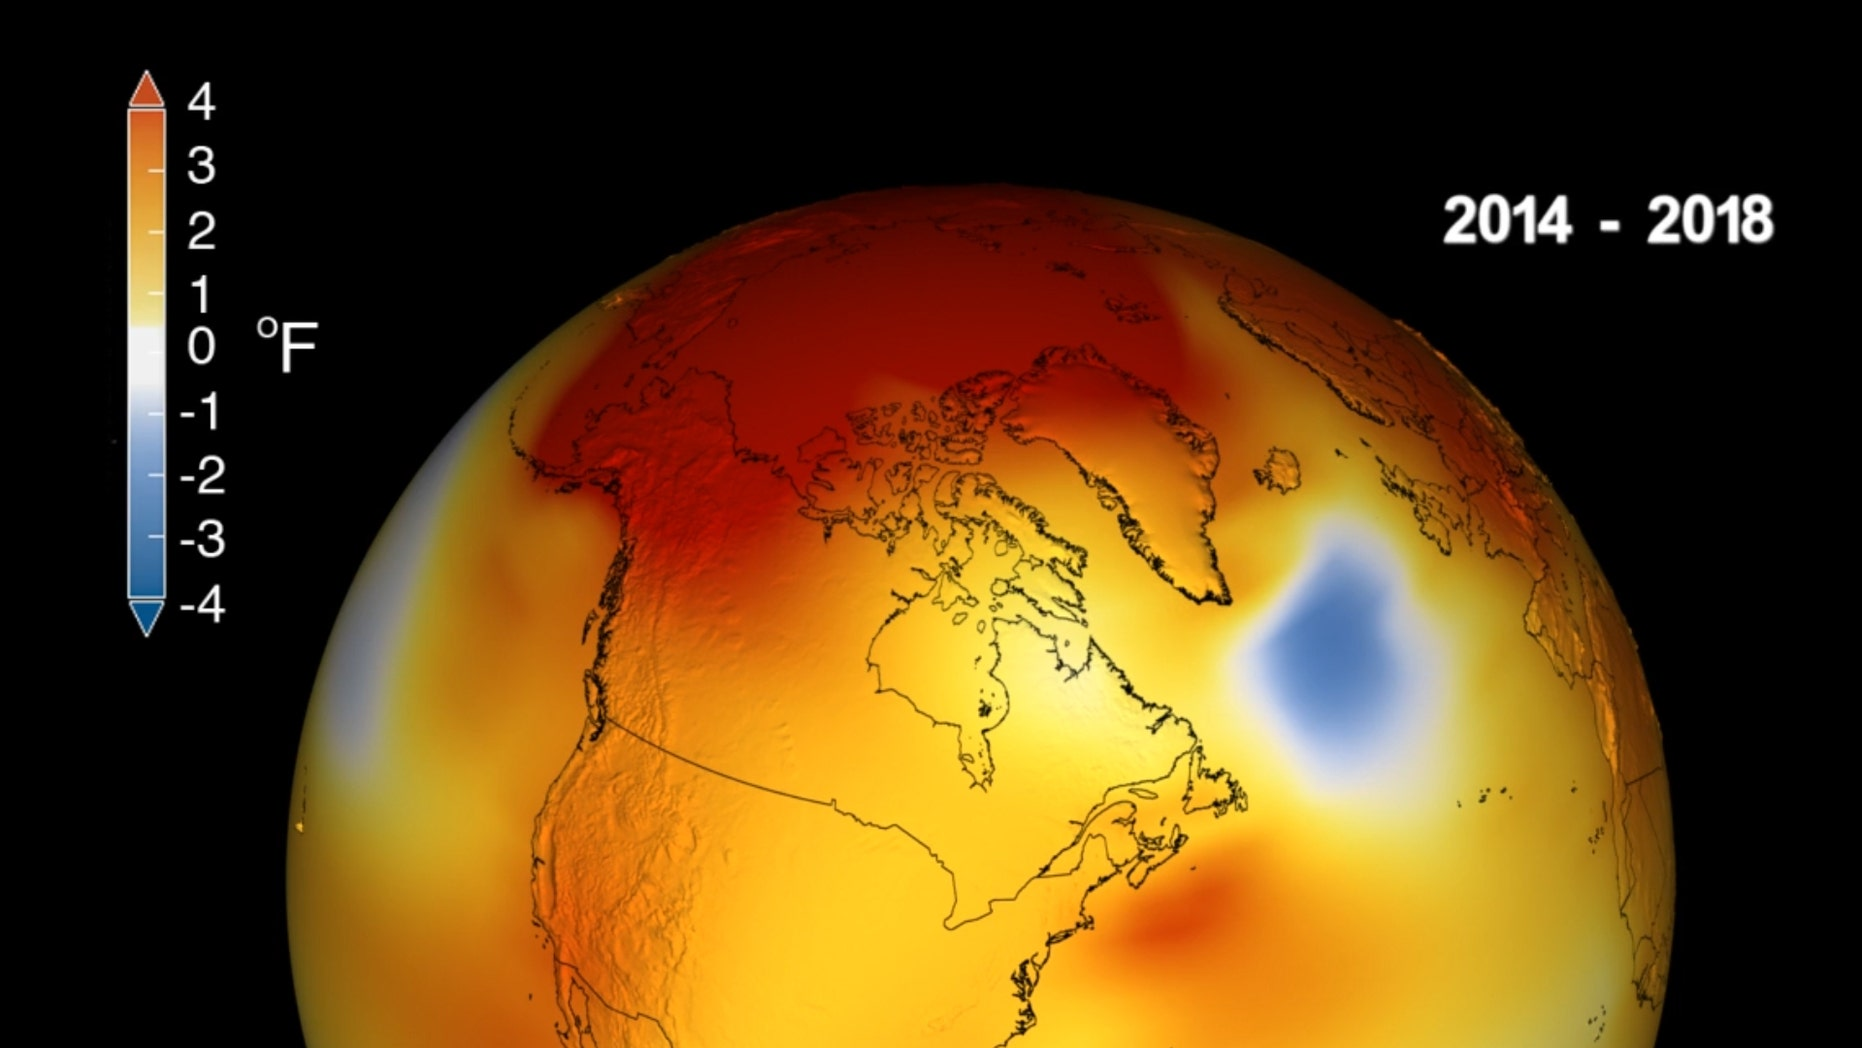 Earth just suffered through its 4th hottest year on record